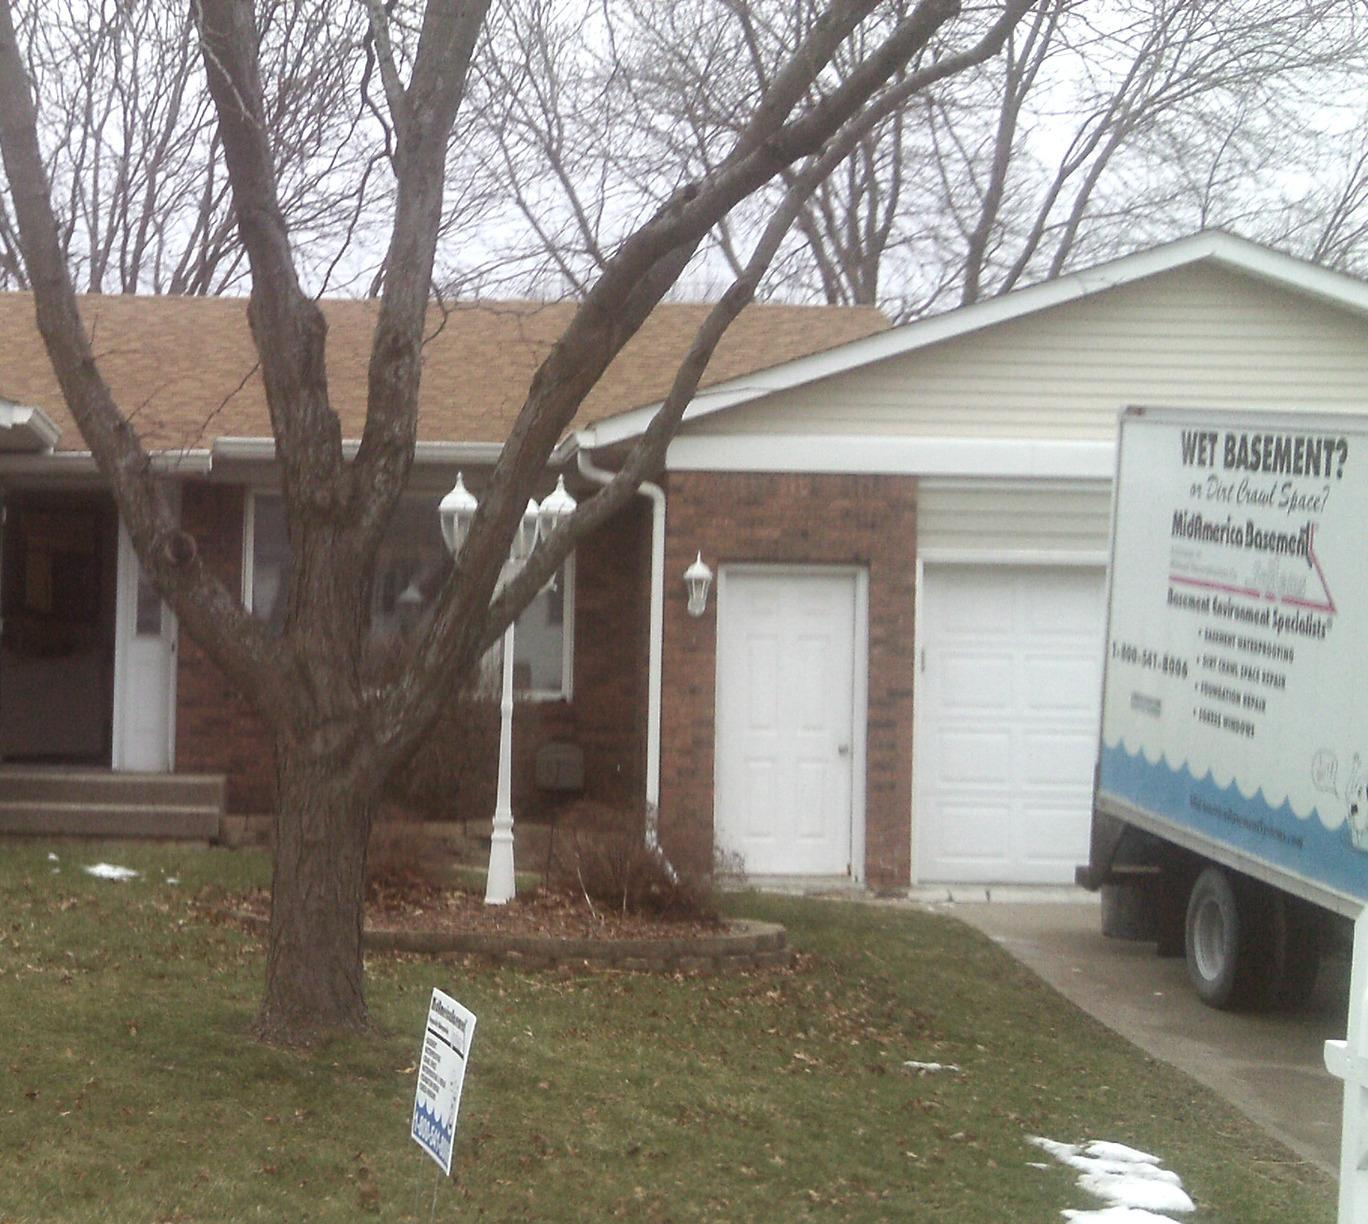 The team is ready to help another family claim their basement back!